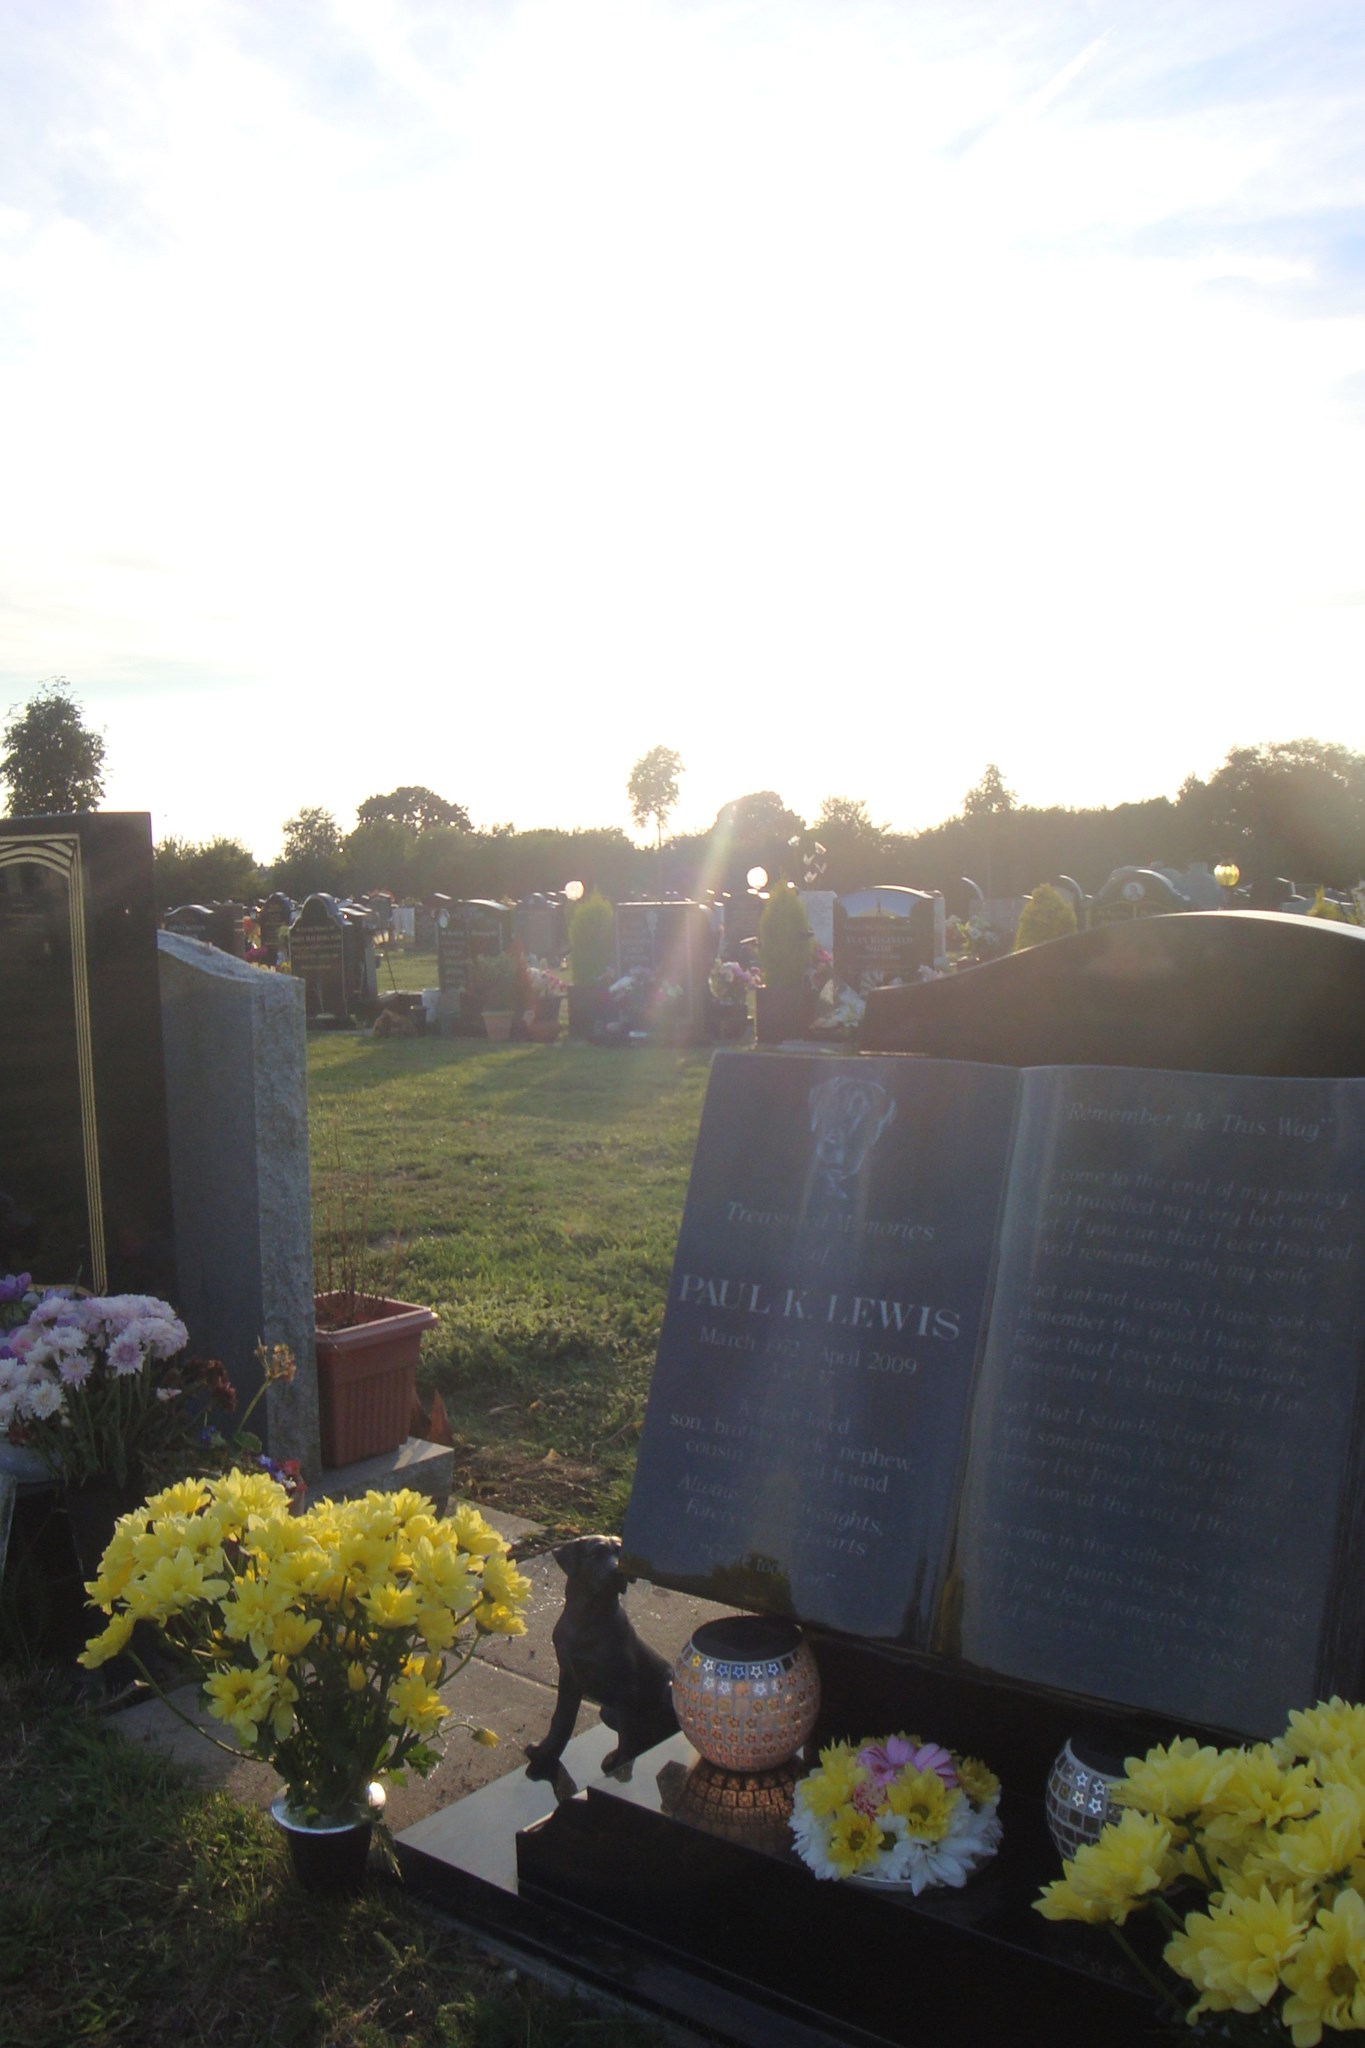 The early evening sun shines on Paul's spot - 29th August 2013